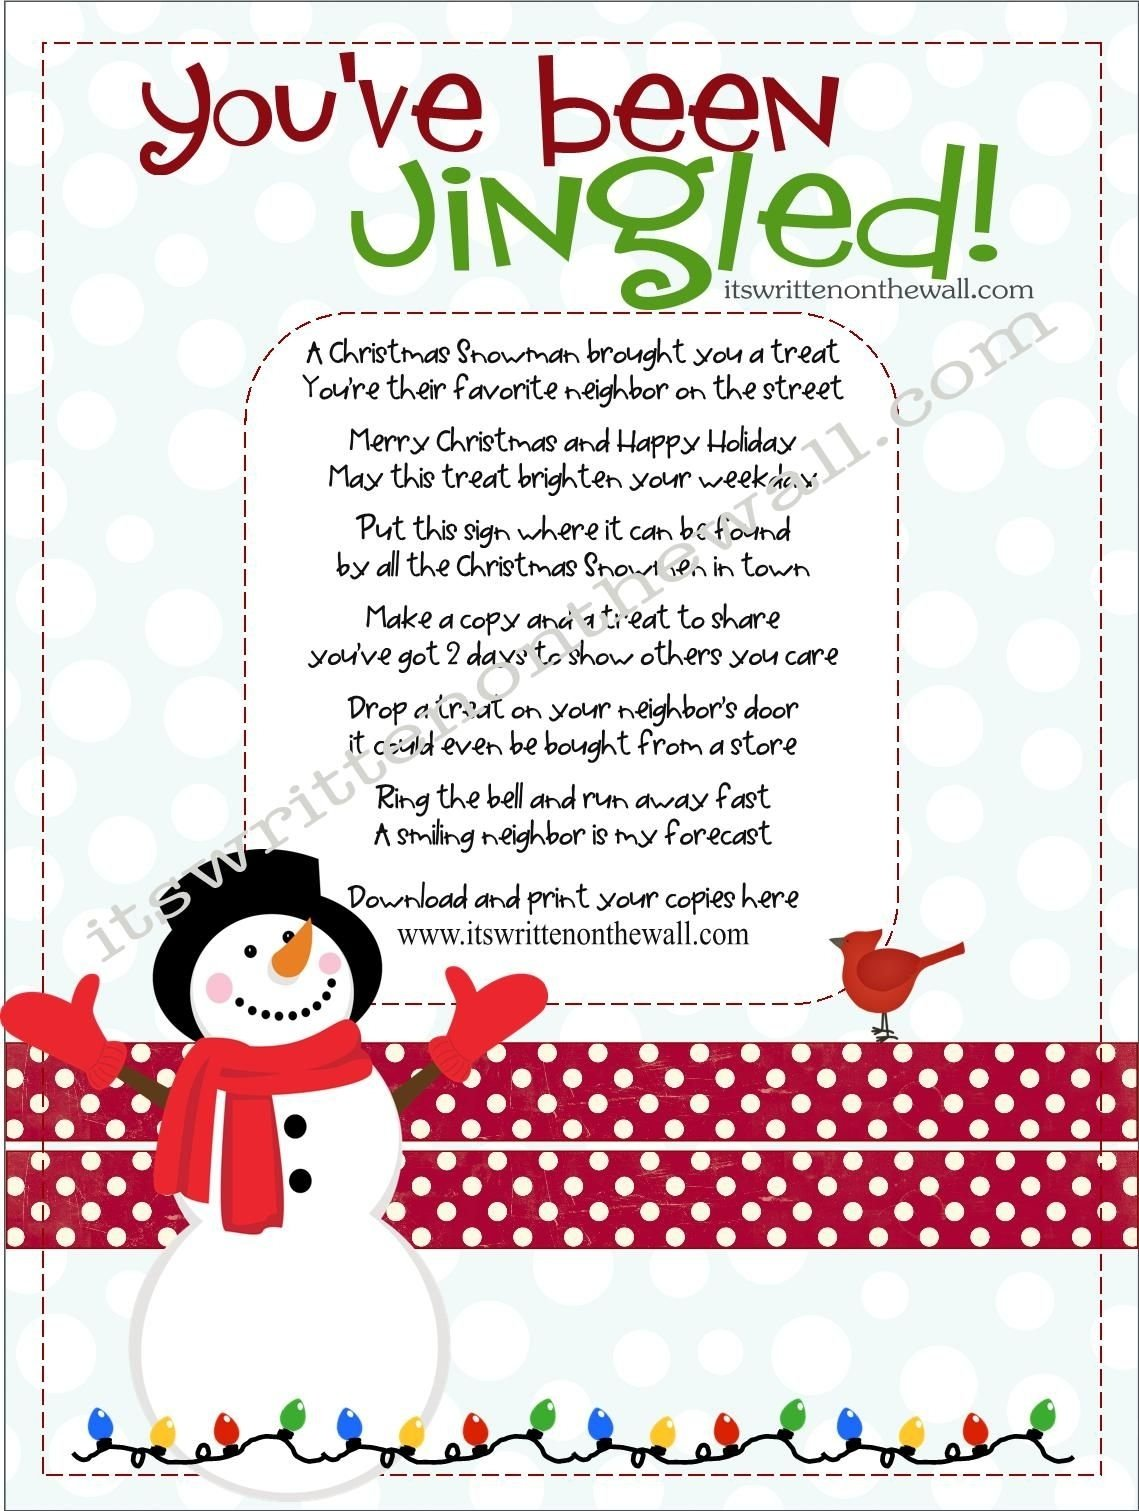 10 Lovely Funny Christmas Gift Exchange Ideas its written on the wall christmas youve been jingled cute way 1